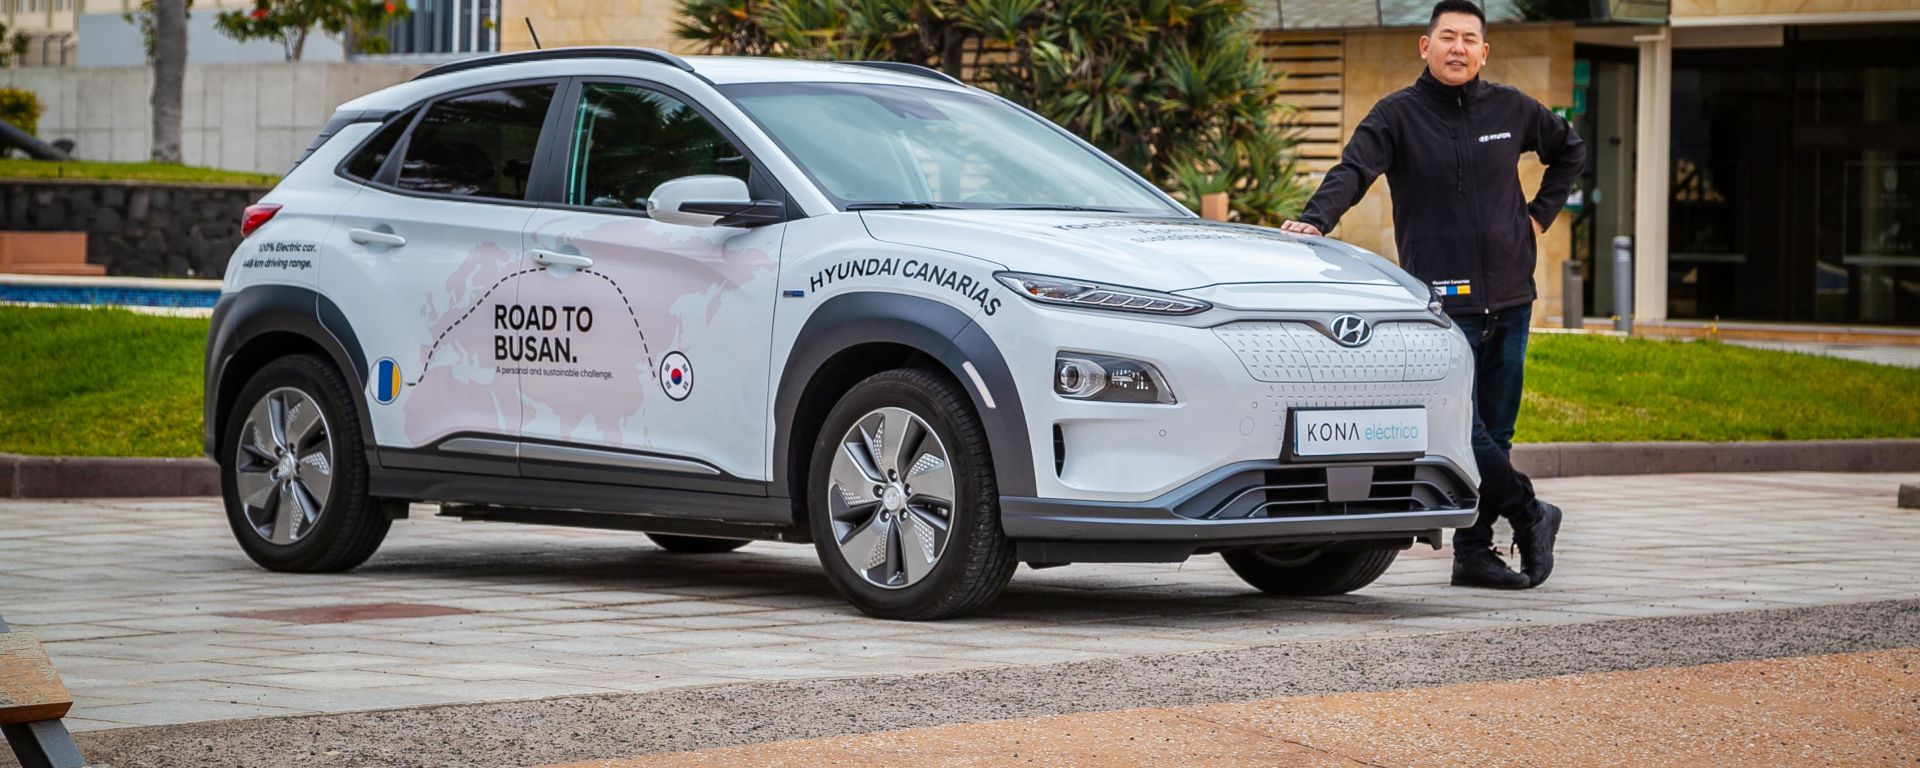 Hyundai Kona Electric: Road to Busan 2019